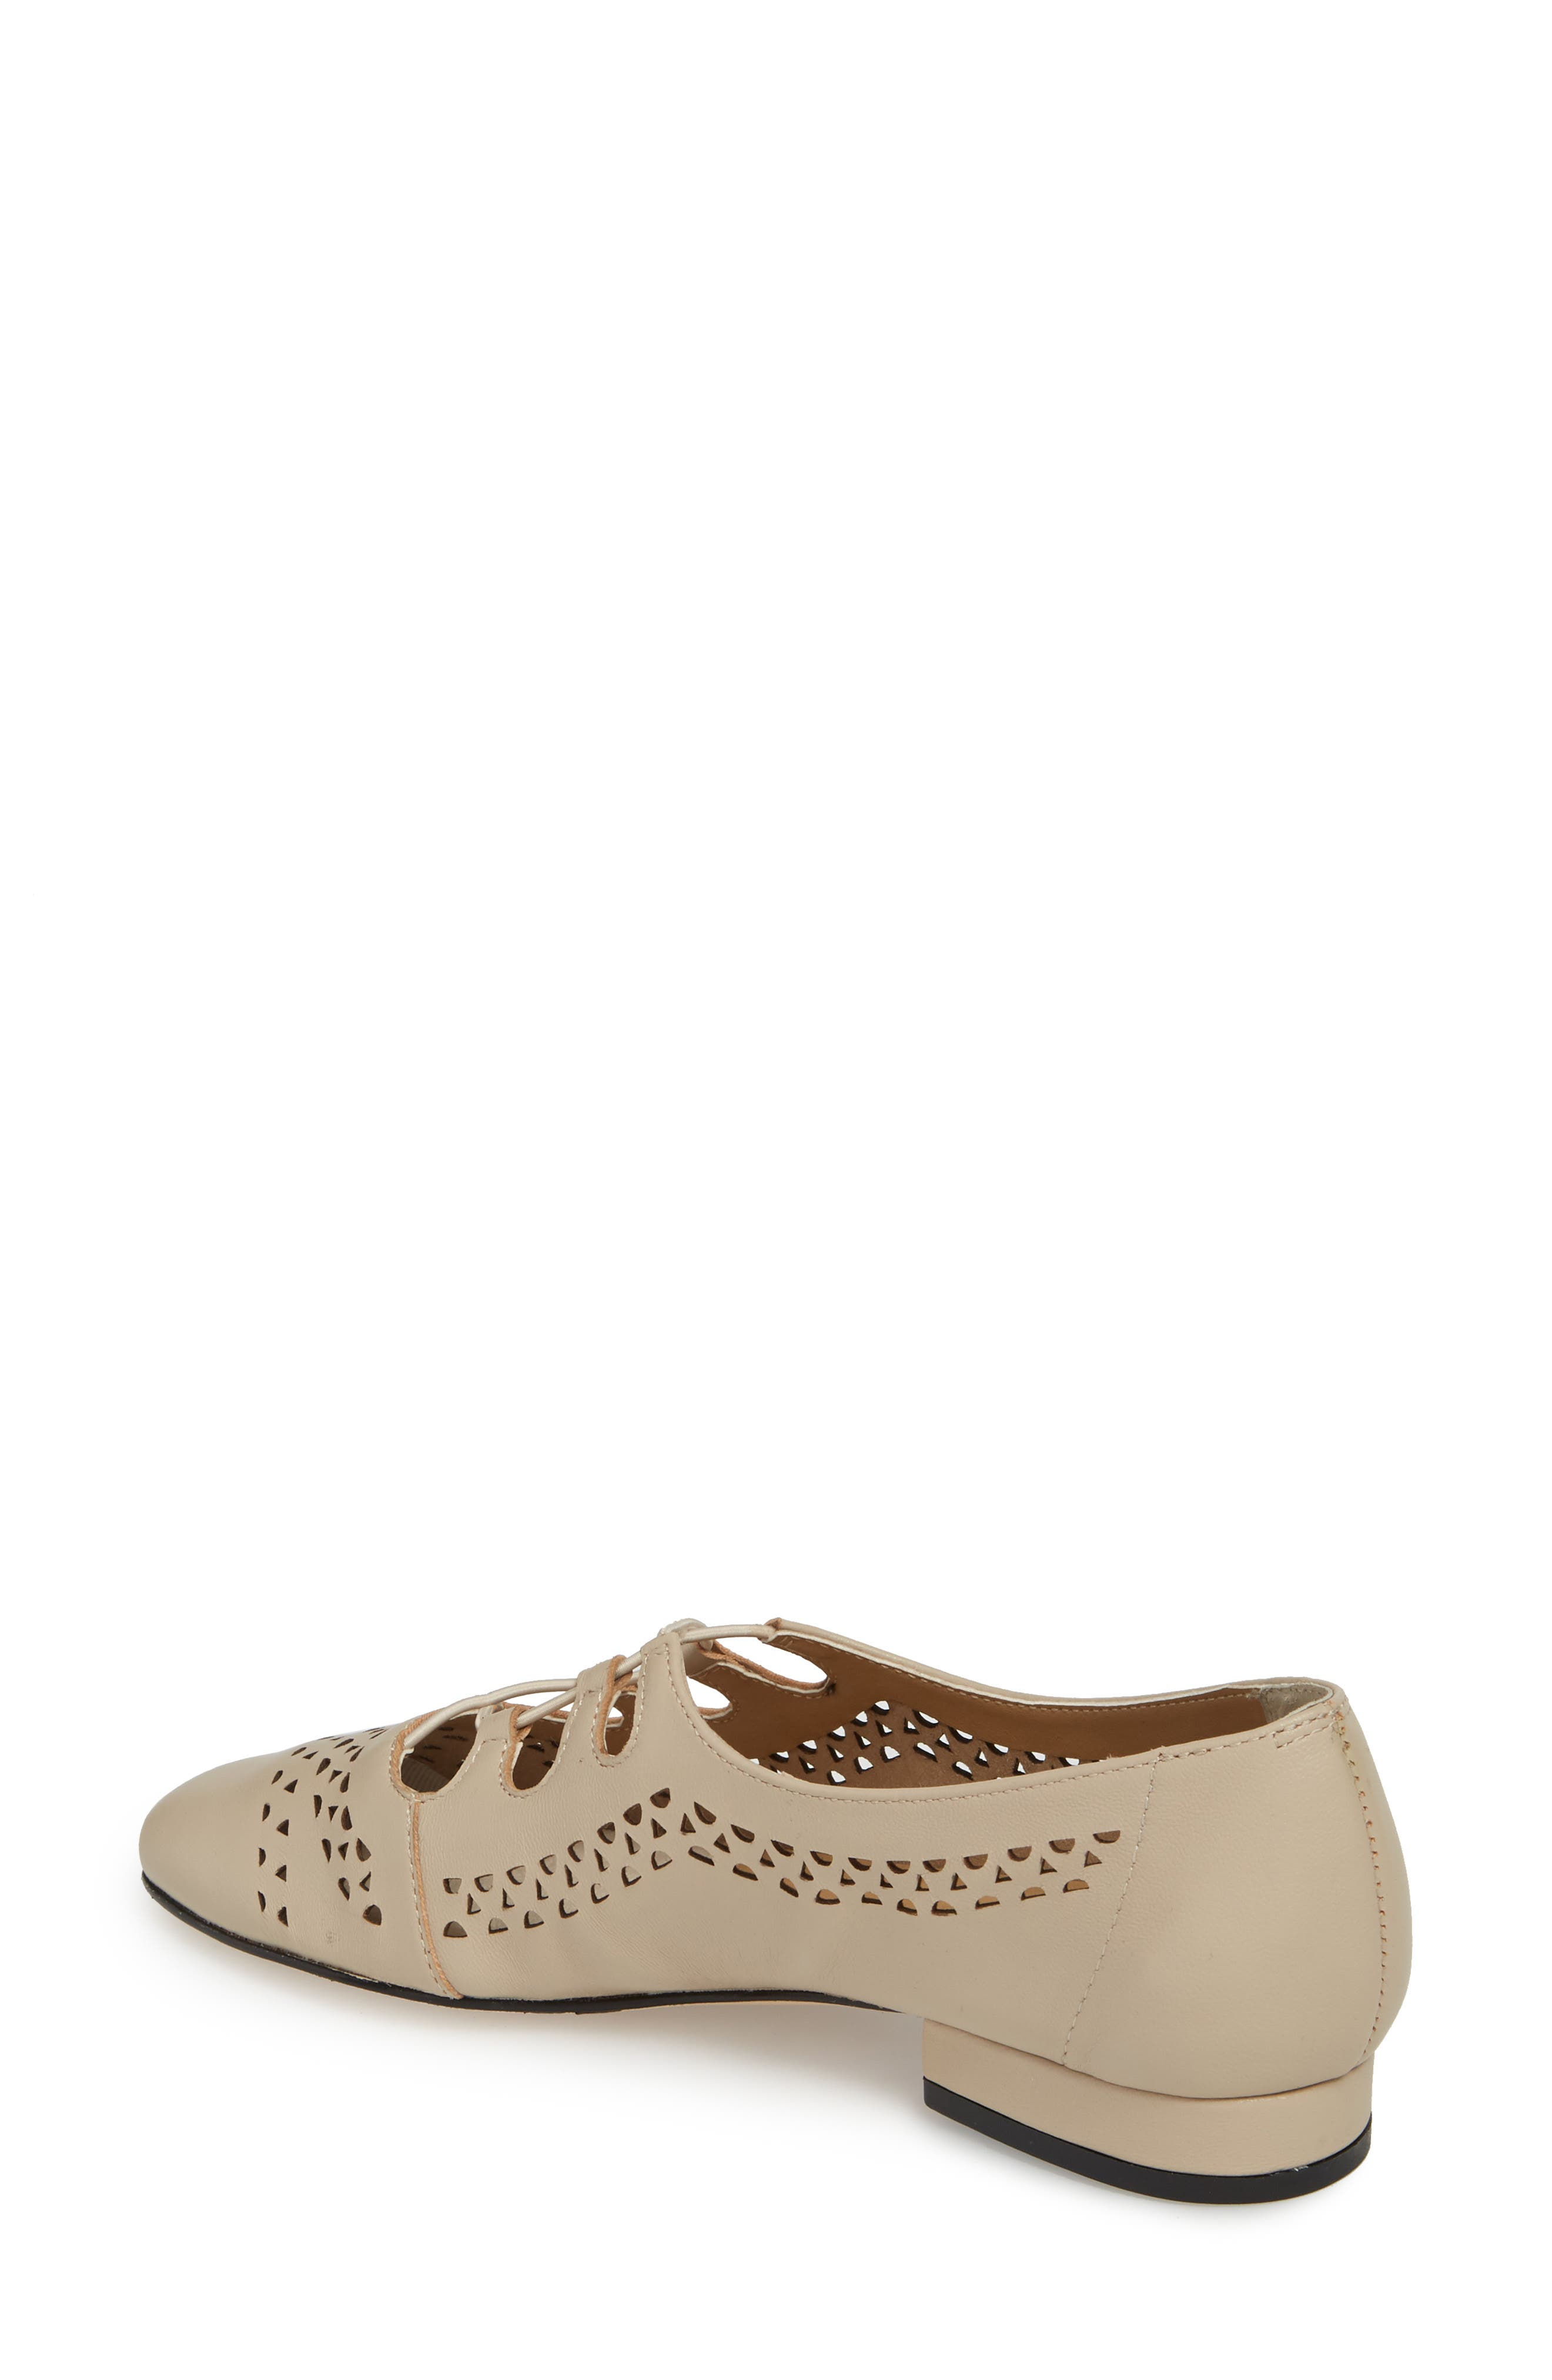 Fabra Perforated Oxford Slip-On,                             Alternate thumbnail 2, color,                             Ecru Leather